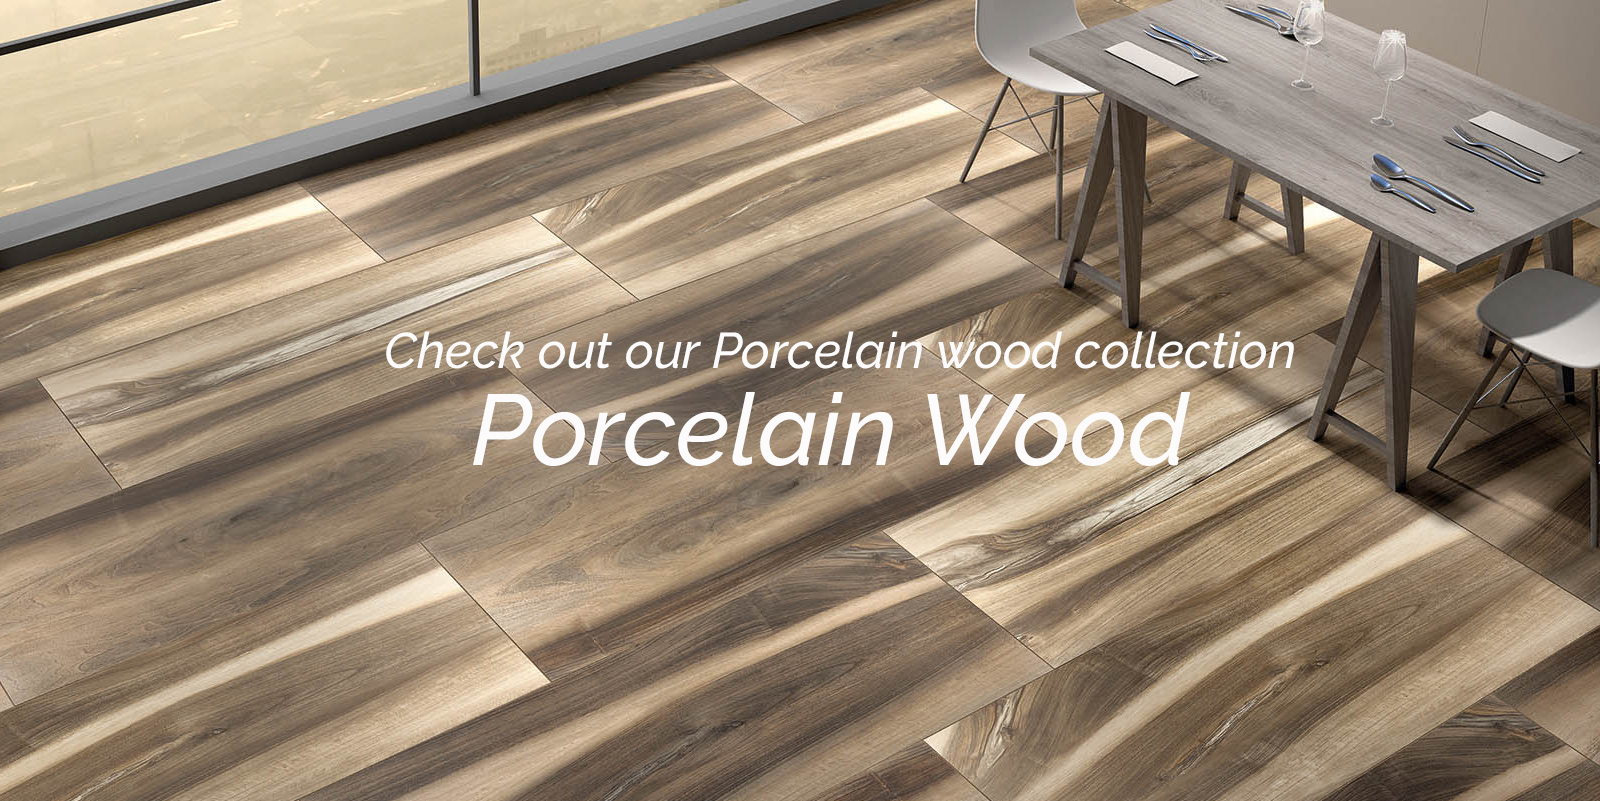 Tilesdirect buy discount tiles online tile store porcelain wood tiles dailygadgetfo Images